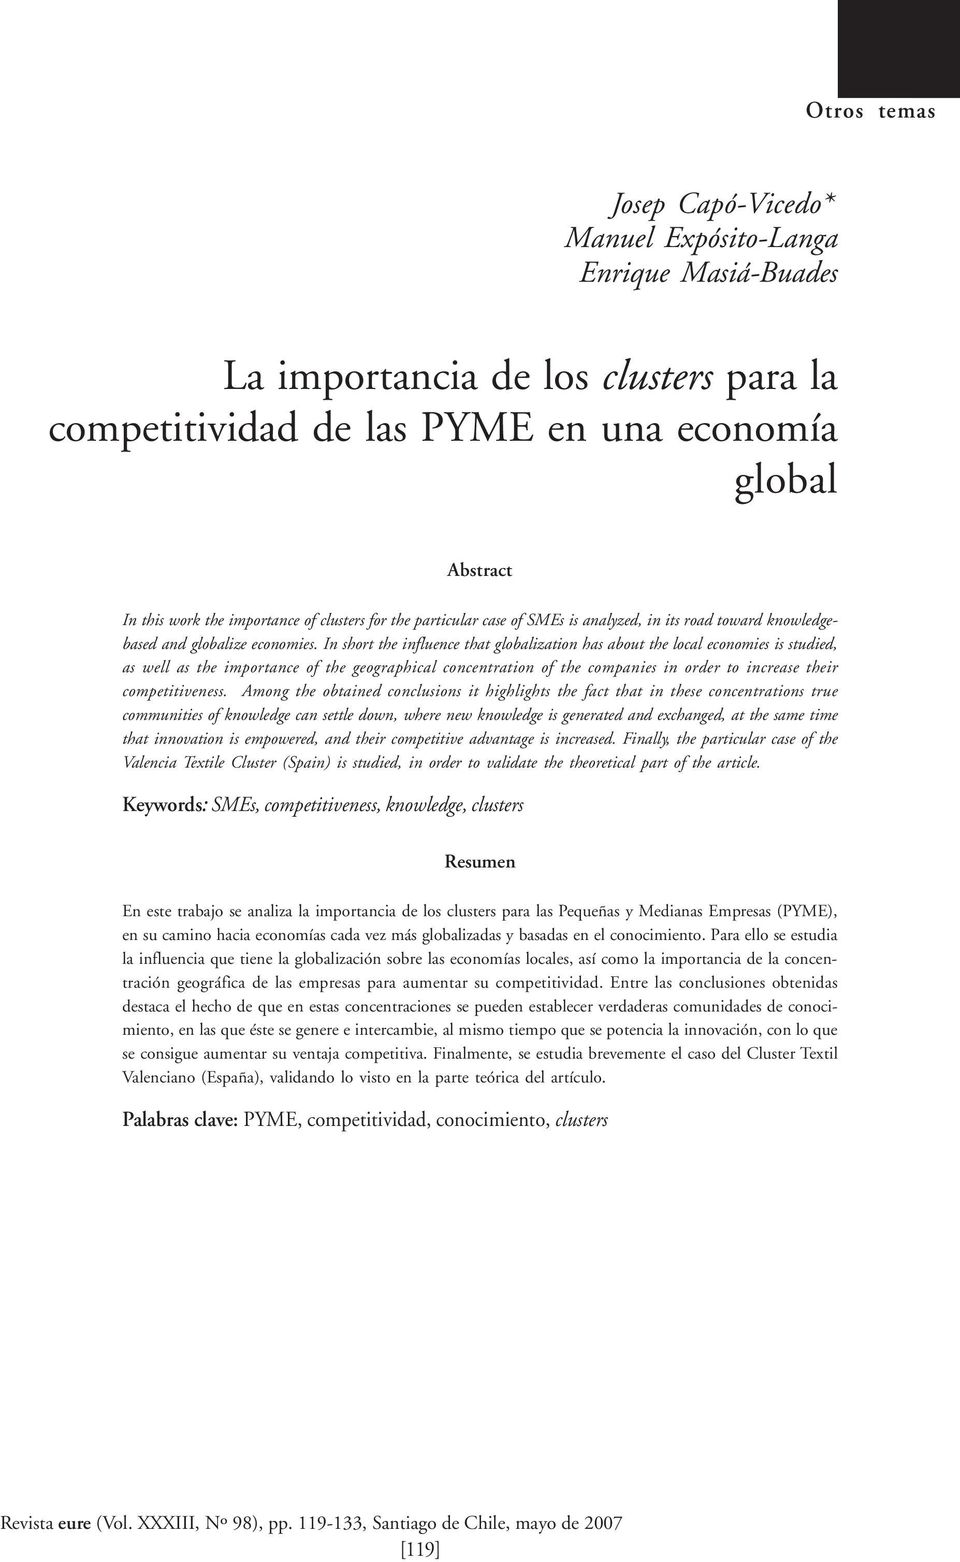 In short the influence that globalization has about the local economies is studied, as well as the importance of the geographical concentration of the companies in order to increase their